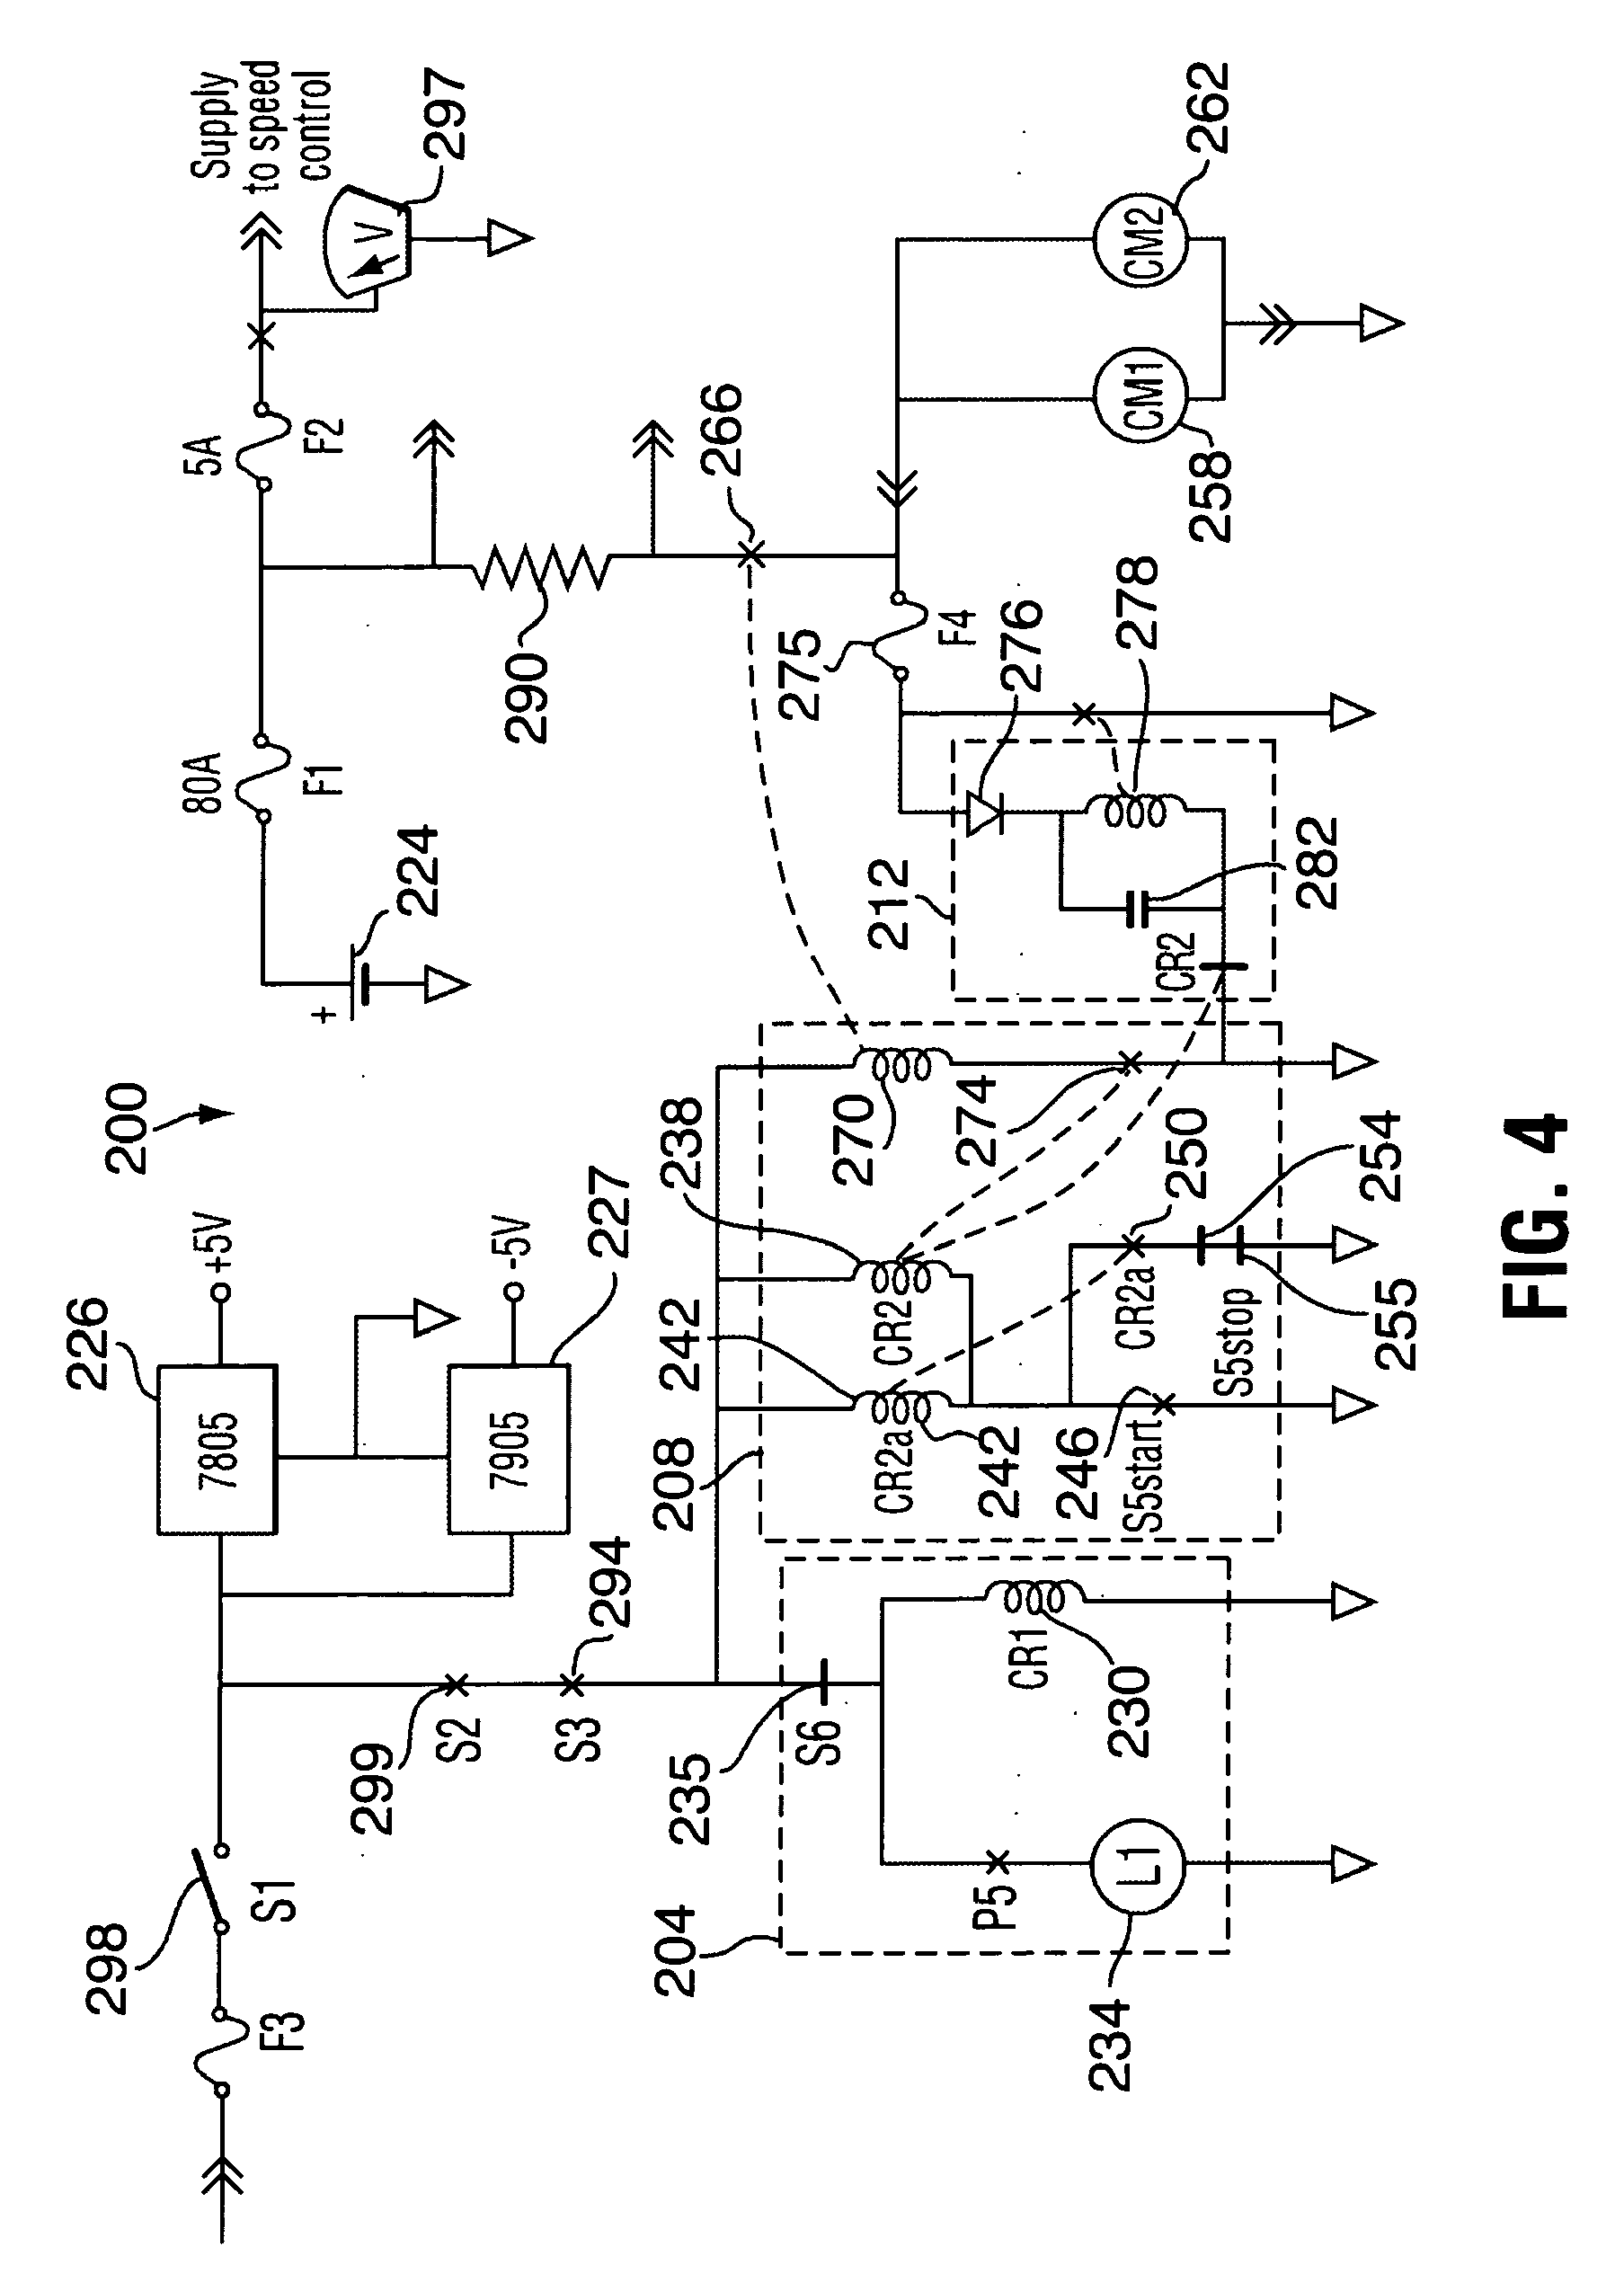 Wiring Diagram For International Hydro 100 Wiring Wiring